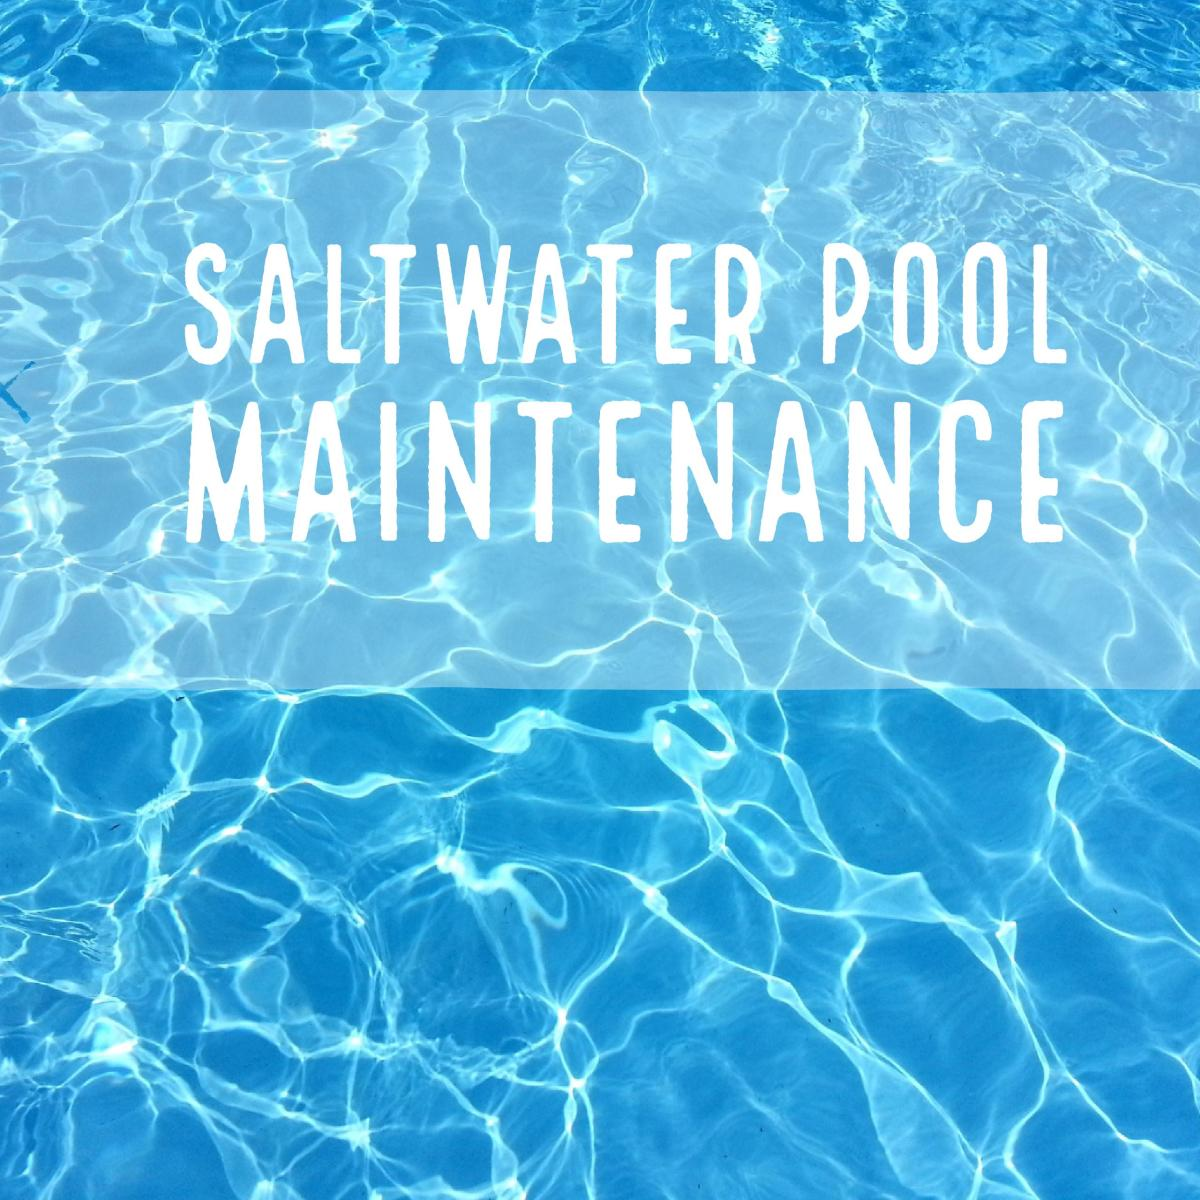 How to Fix Common Saltwater Pool Problems